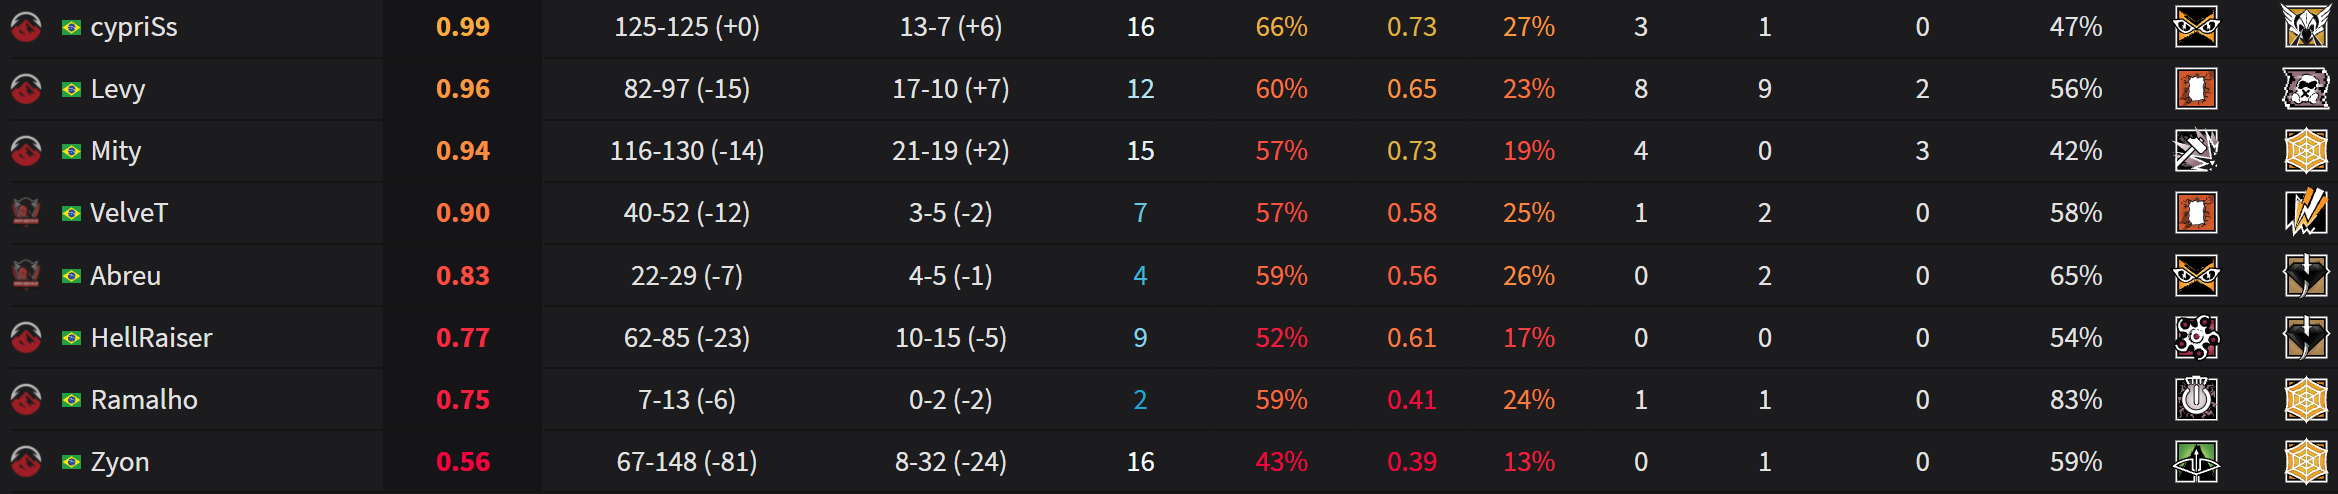 Elevate's stats for Season 10